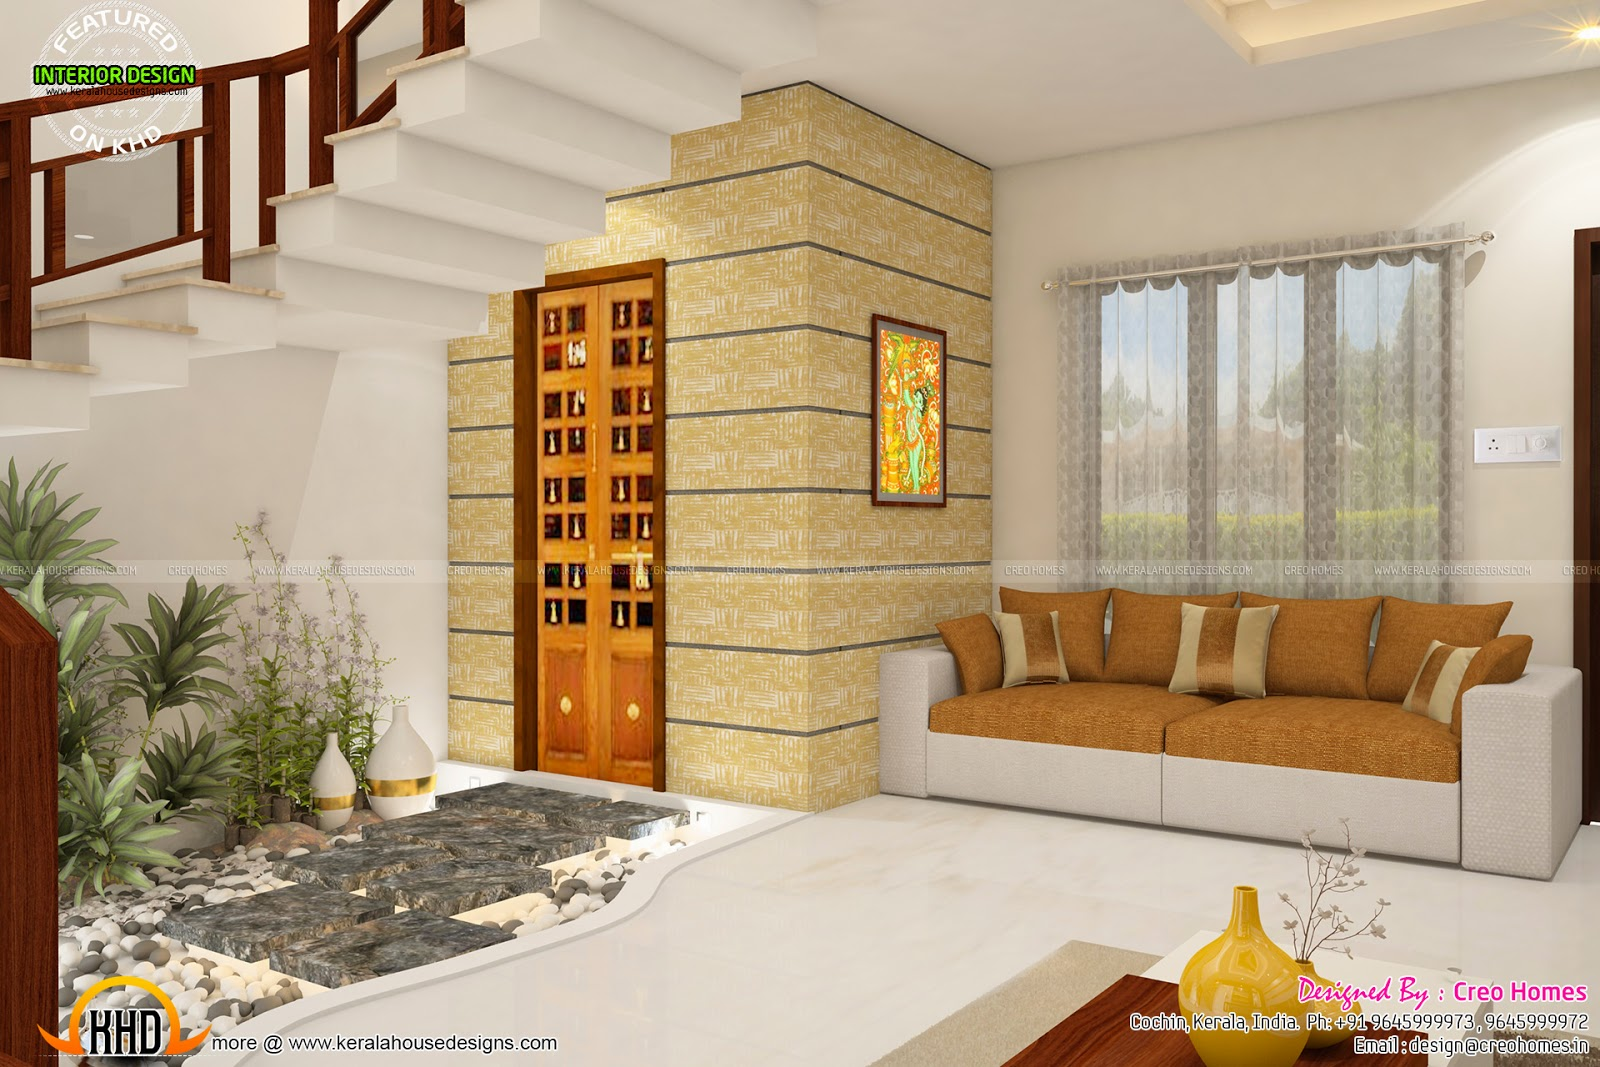 Total home interior solutions by creo homes kerala home for Home interior design india